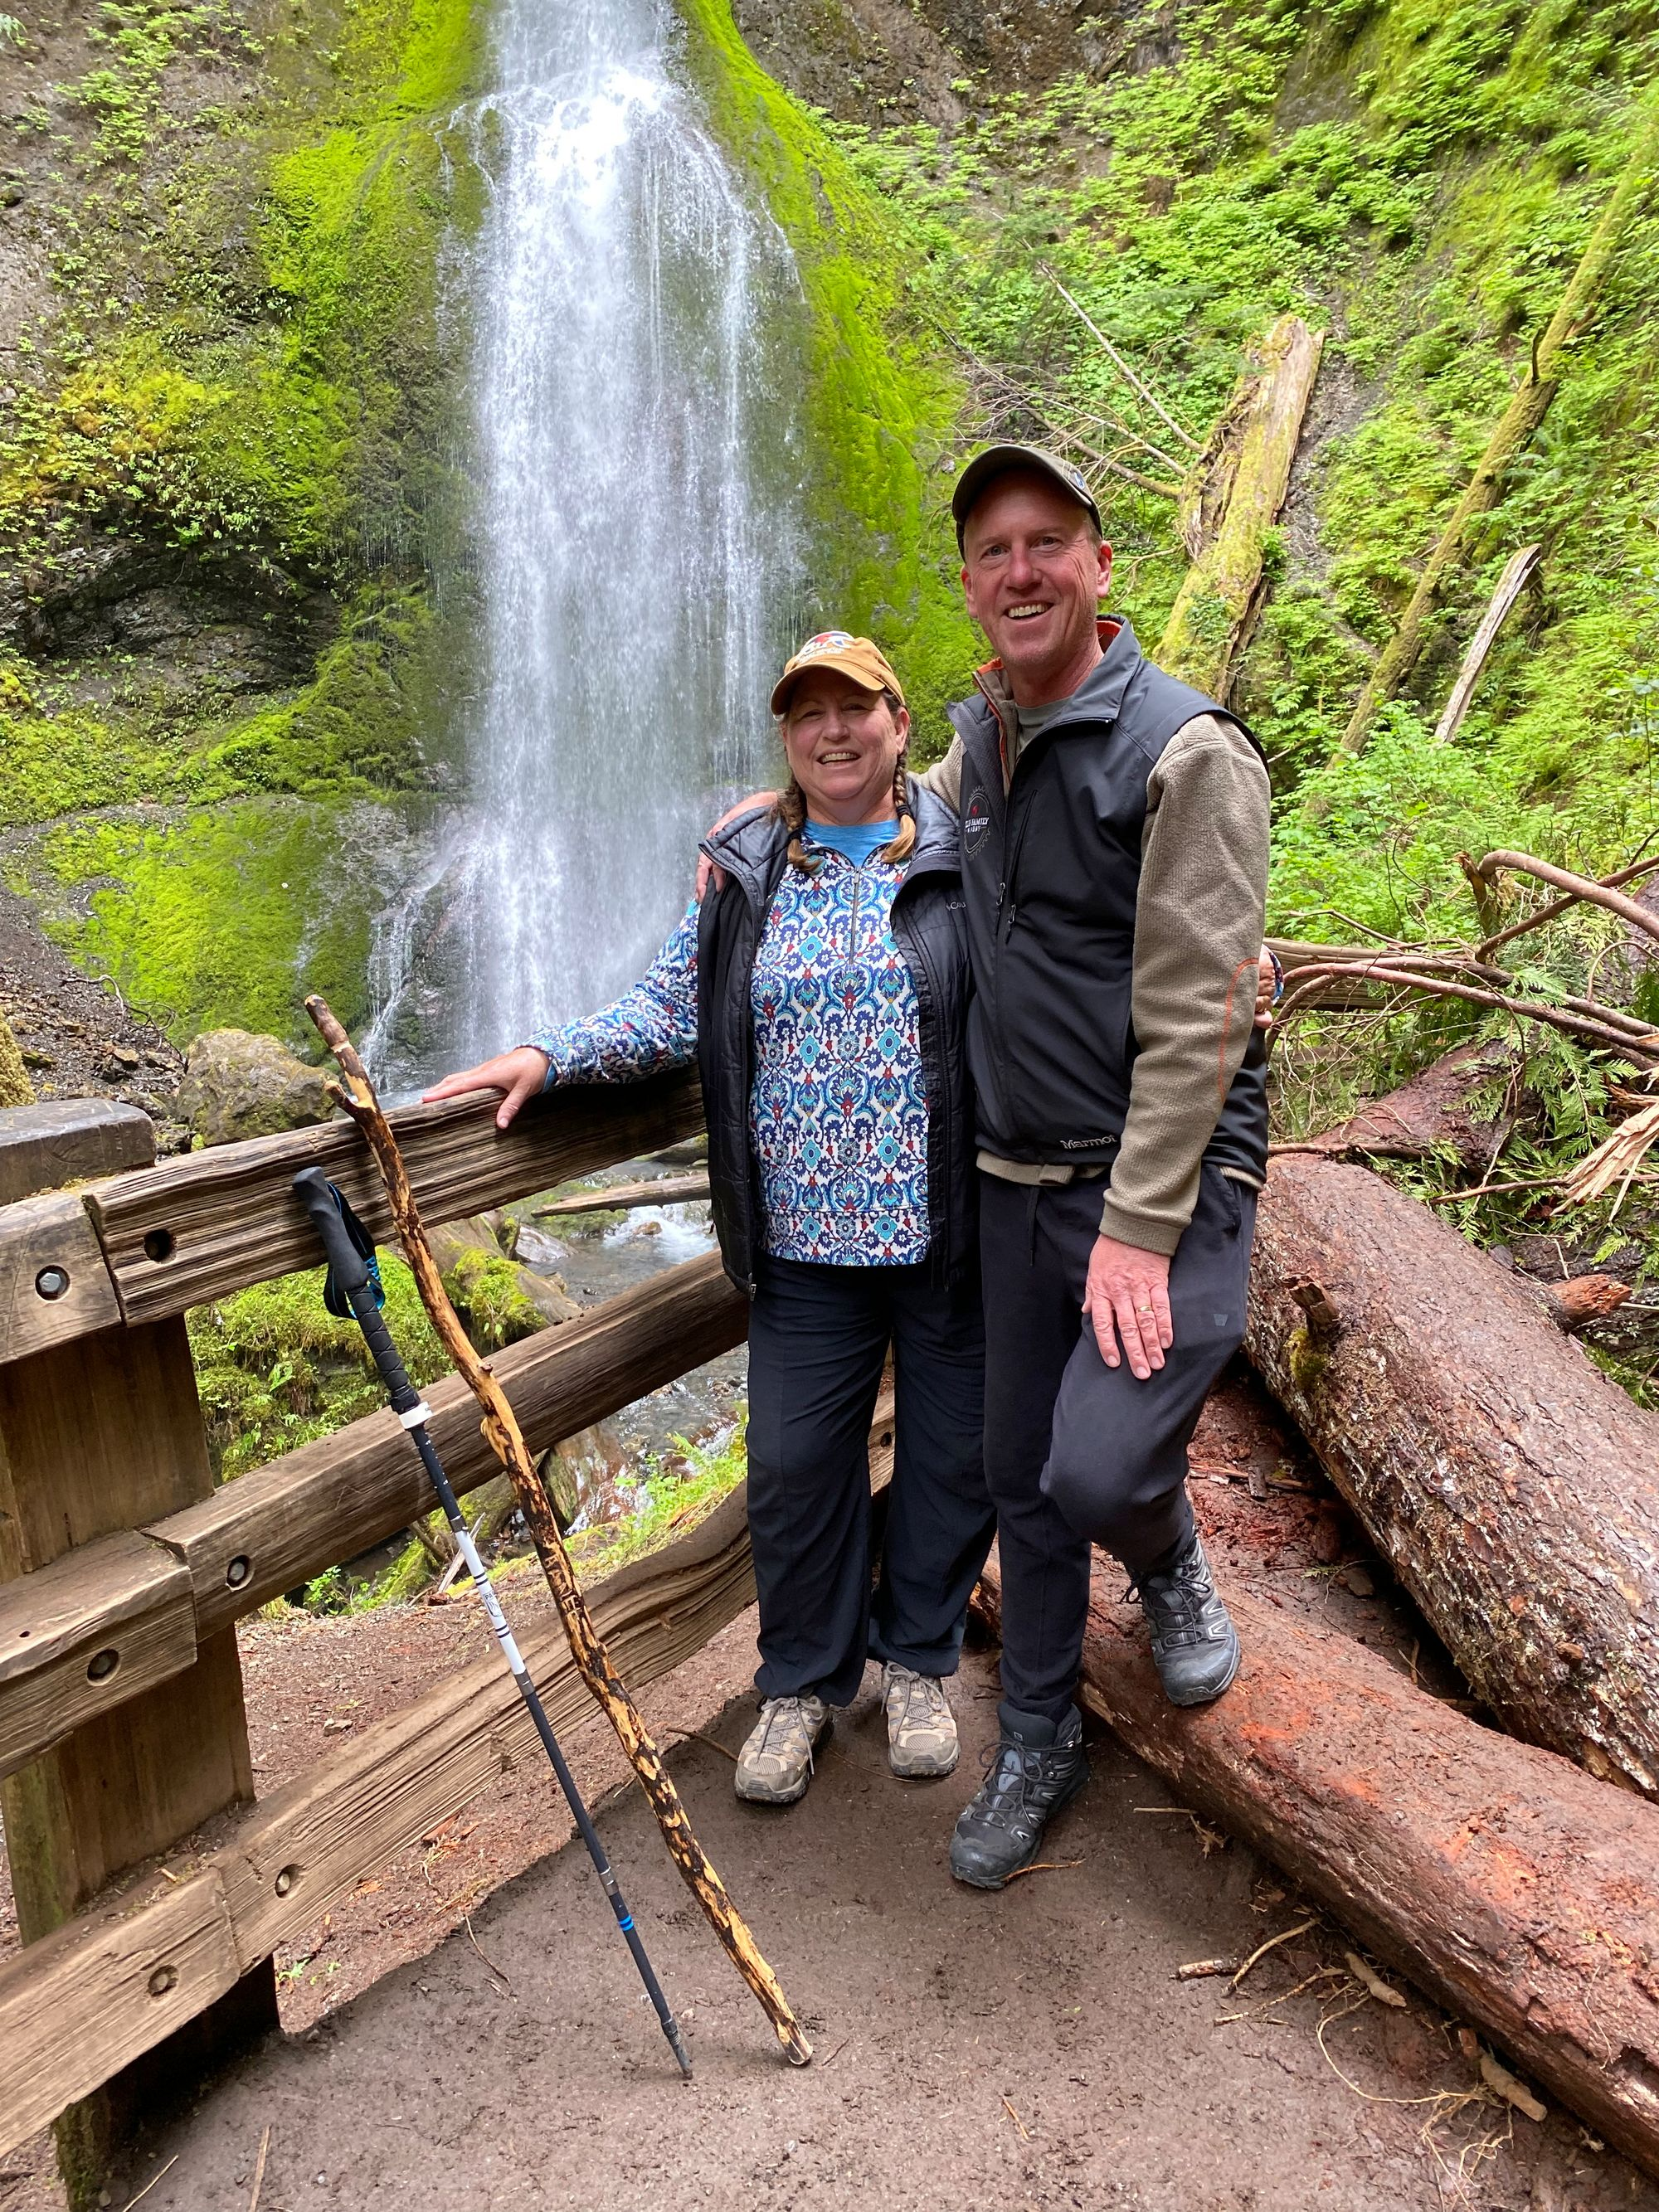 Marymere Falls 2021 — Good luck to the young couple that took our picture!